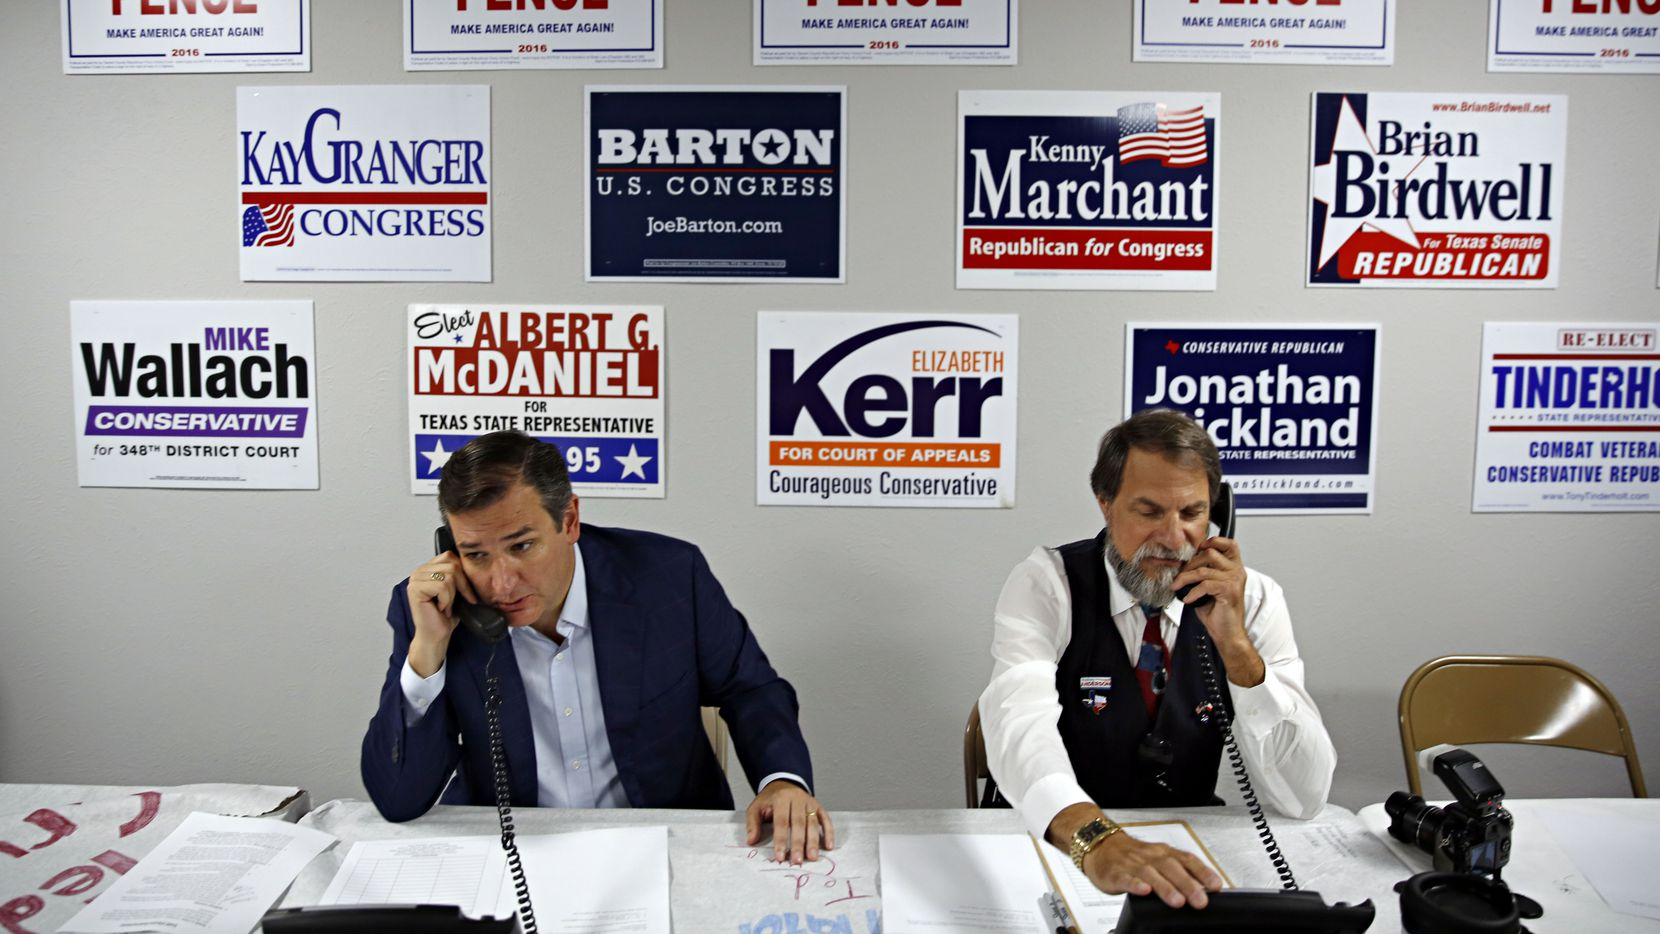 Sen. Ted Cruz (left) and James Ashby make calls at Tarrant County Republican Party headquarters Wednesday, October 5, 2016 in Fort Worth. Cruz, a former presidential candidate, stopped by the facility to meet constituents and work the phone bank.